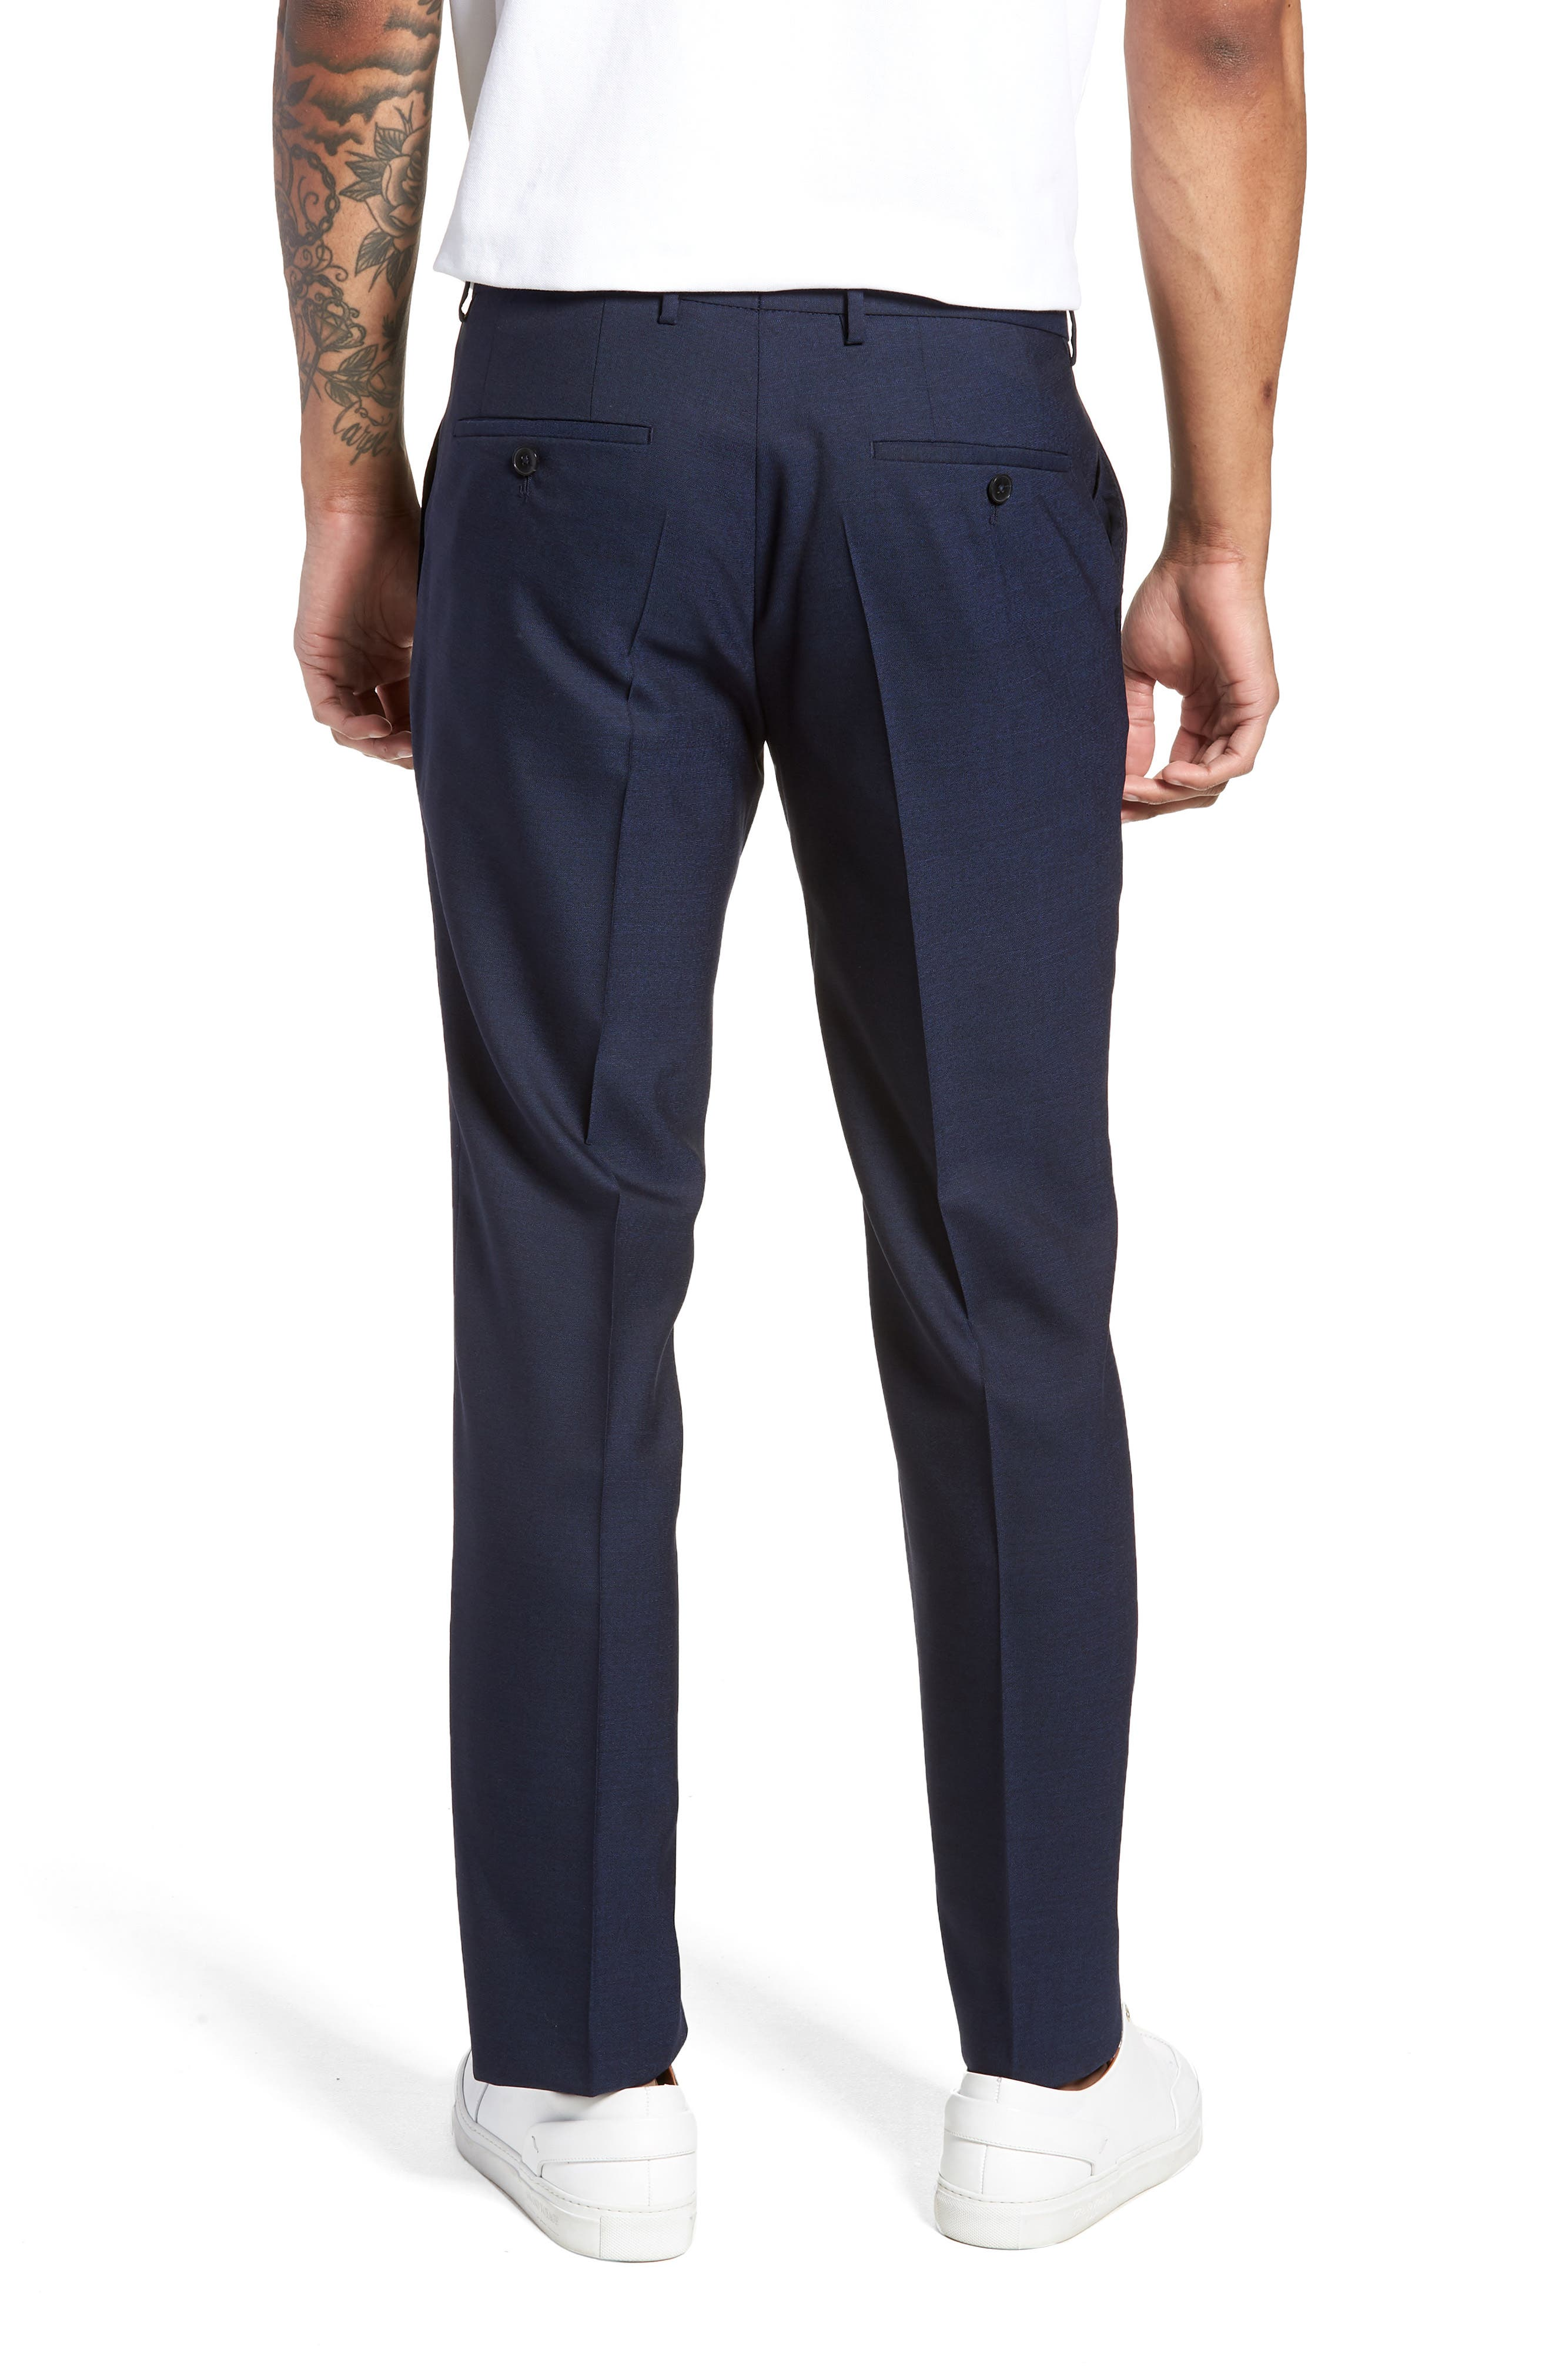 Nordstrom x BOSS Ben Flat Front Solid Wool Trousers,                             Alternate thumbnail 2, color,                             410